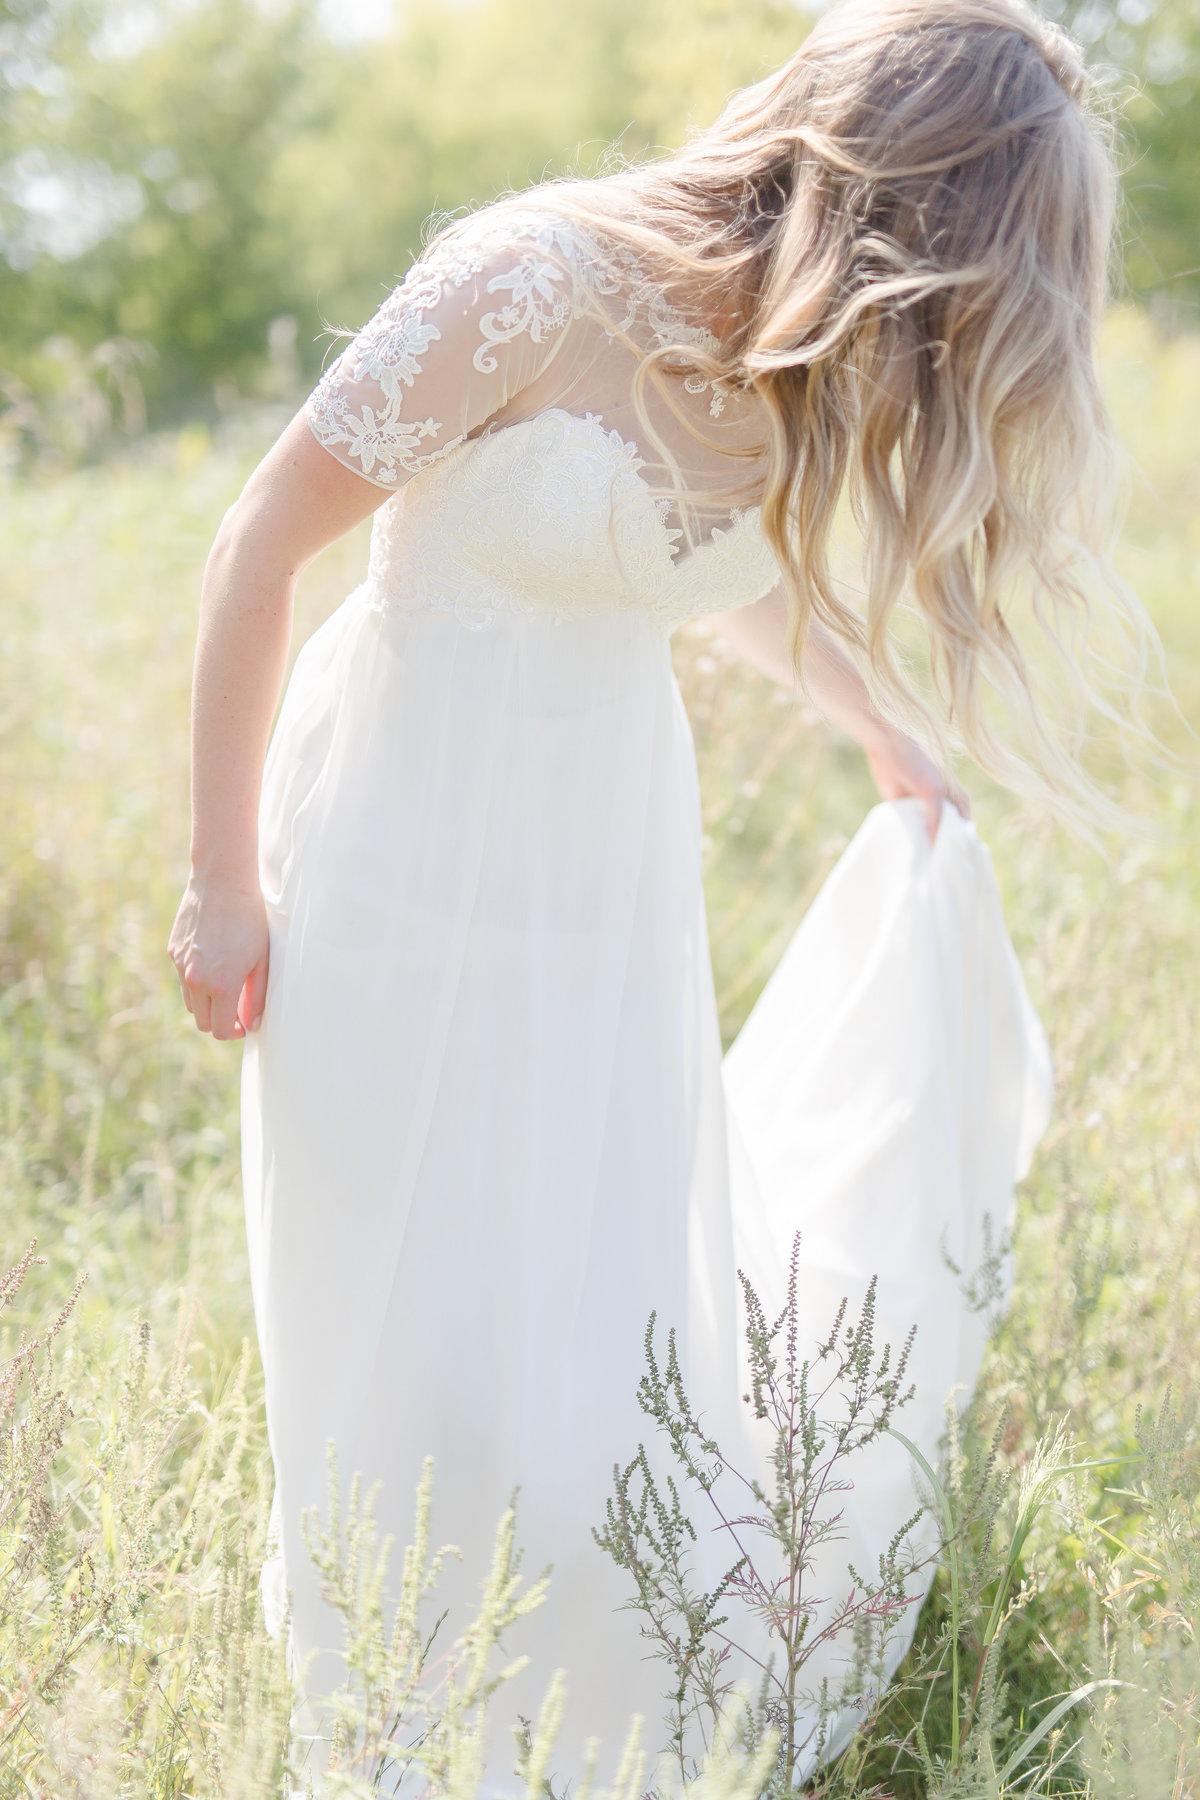 Kailey - Styled Shoot - New Edits-123